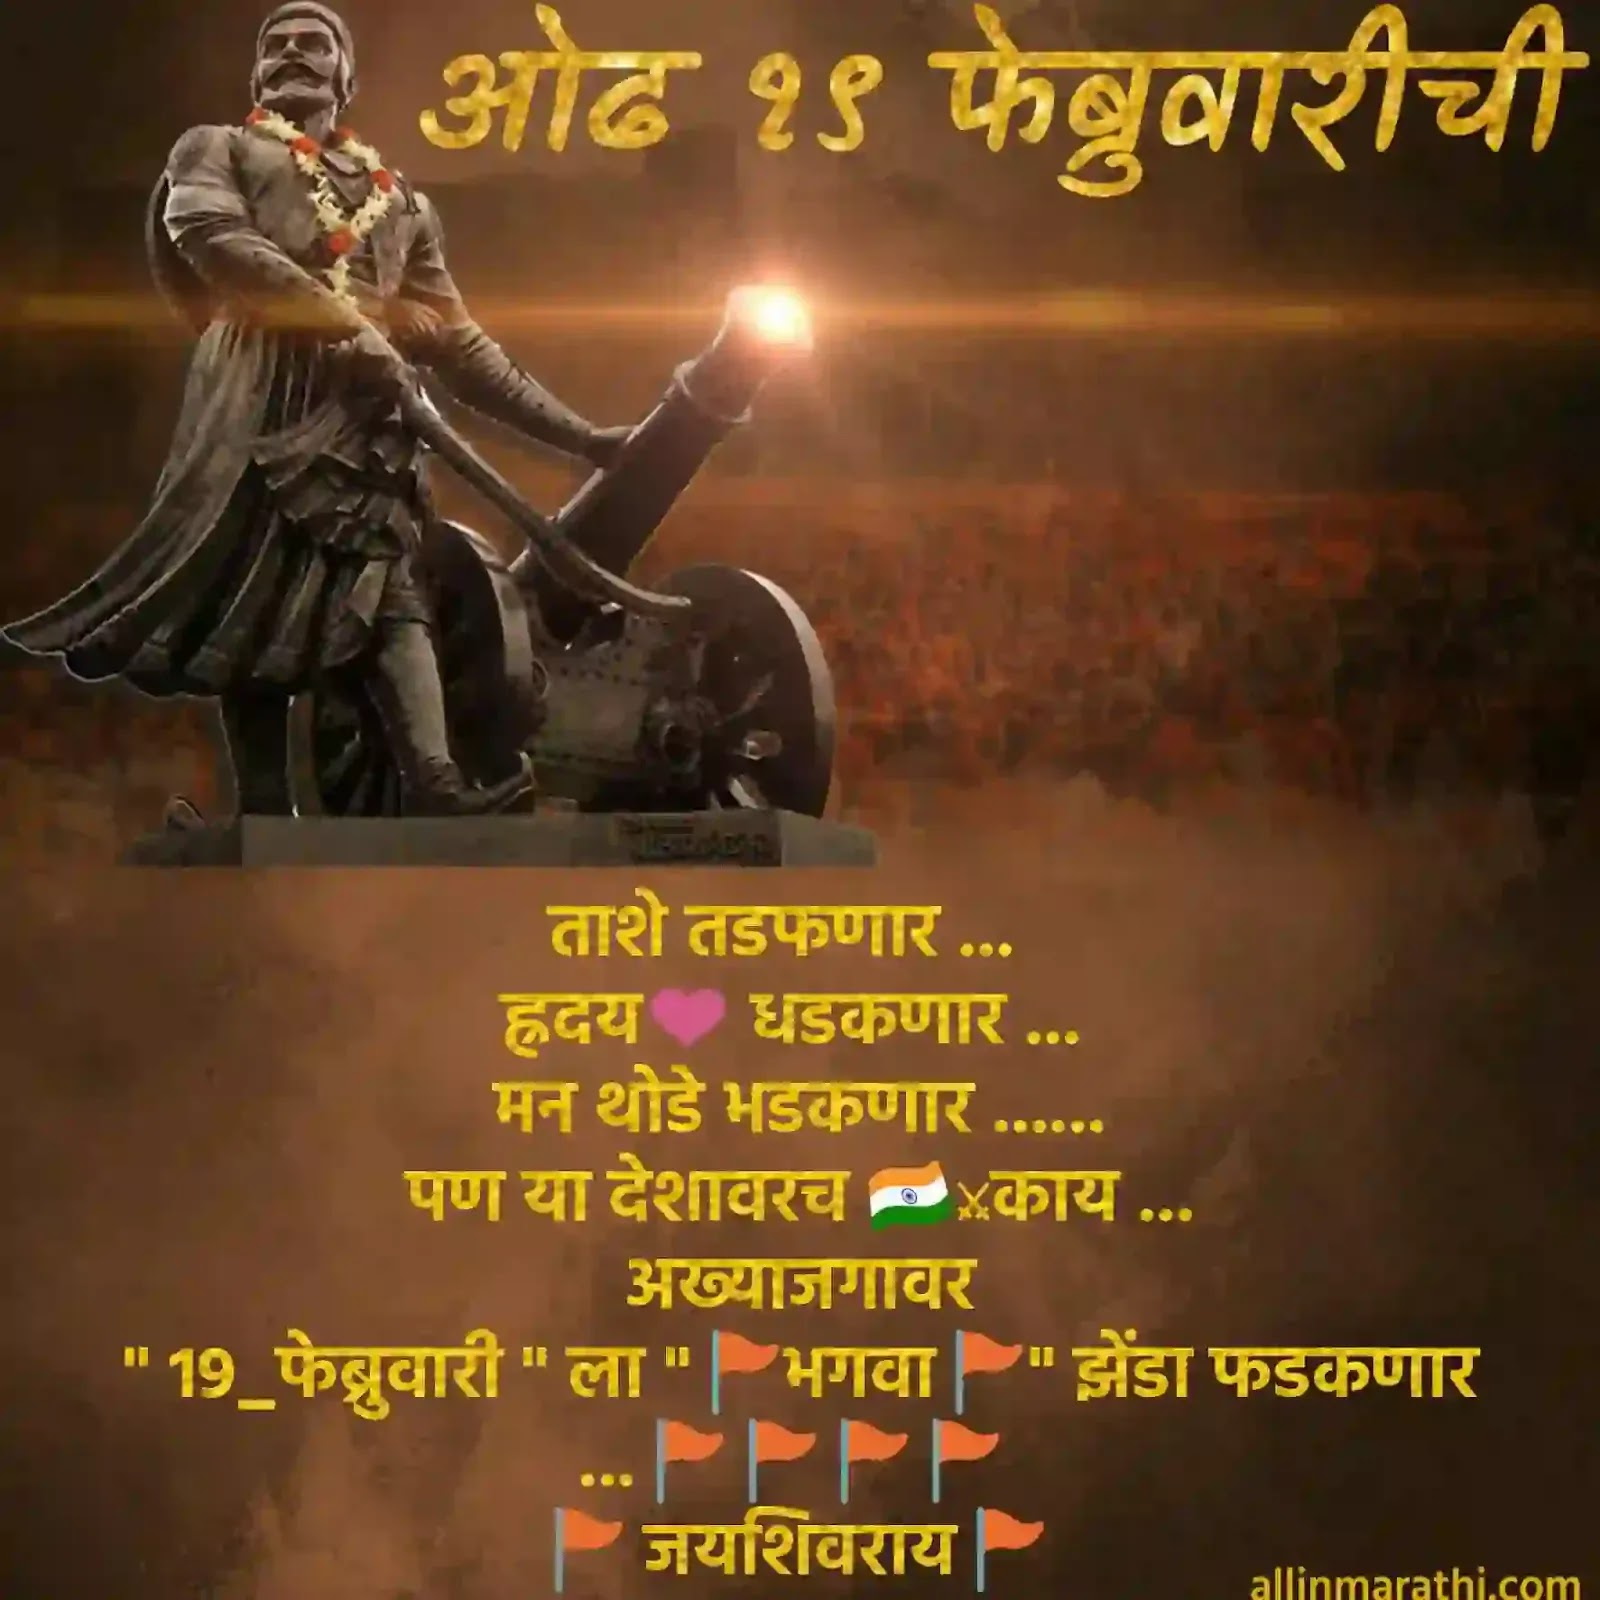 Shiv jayanti wishes images